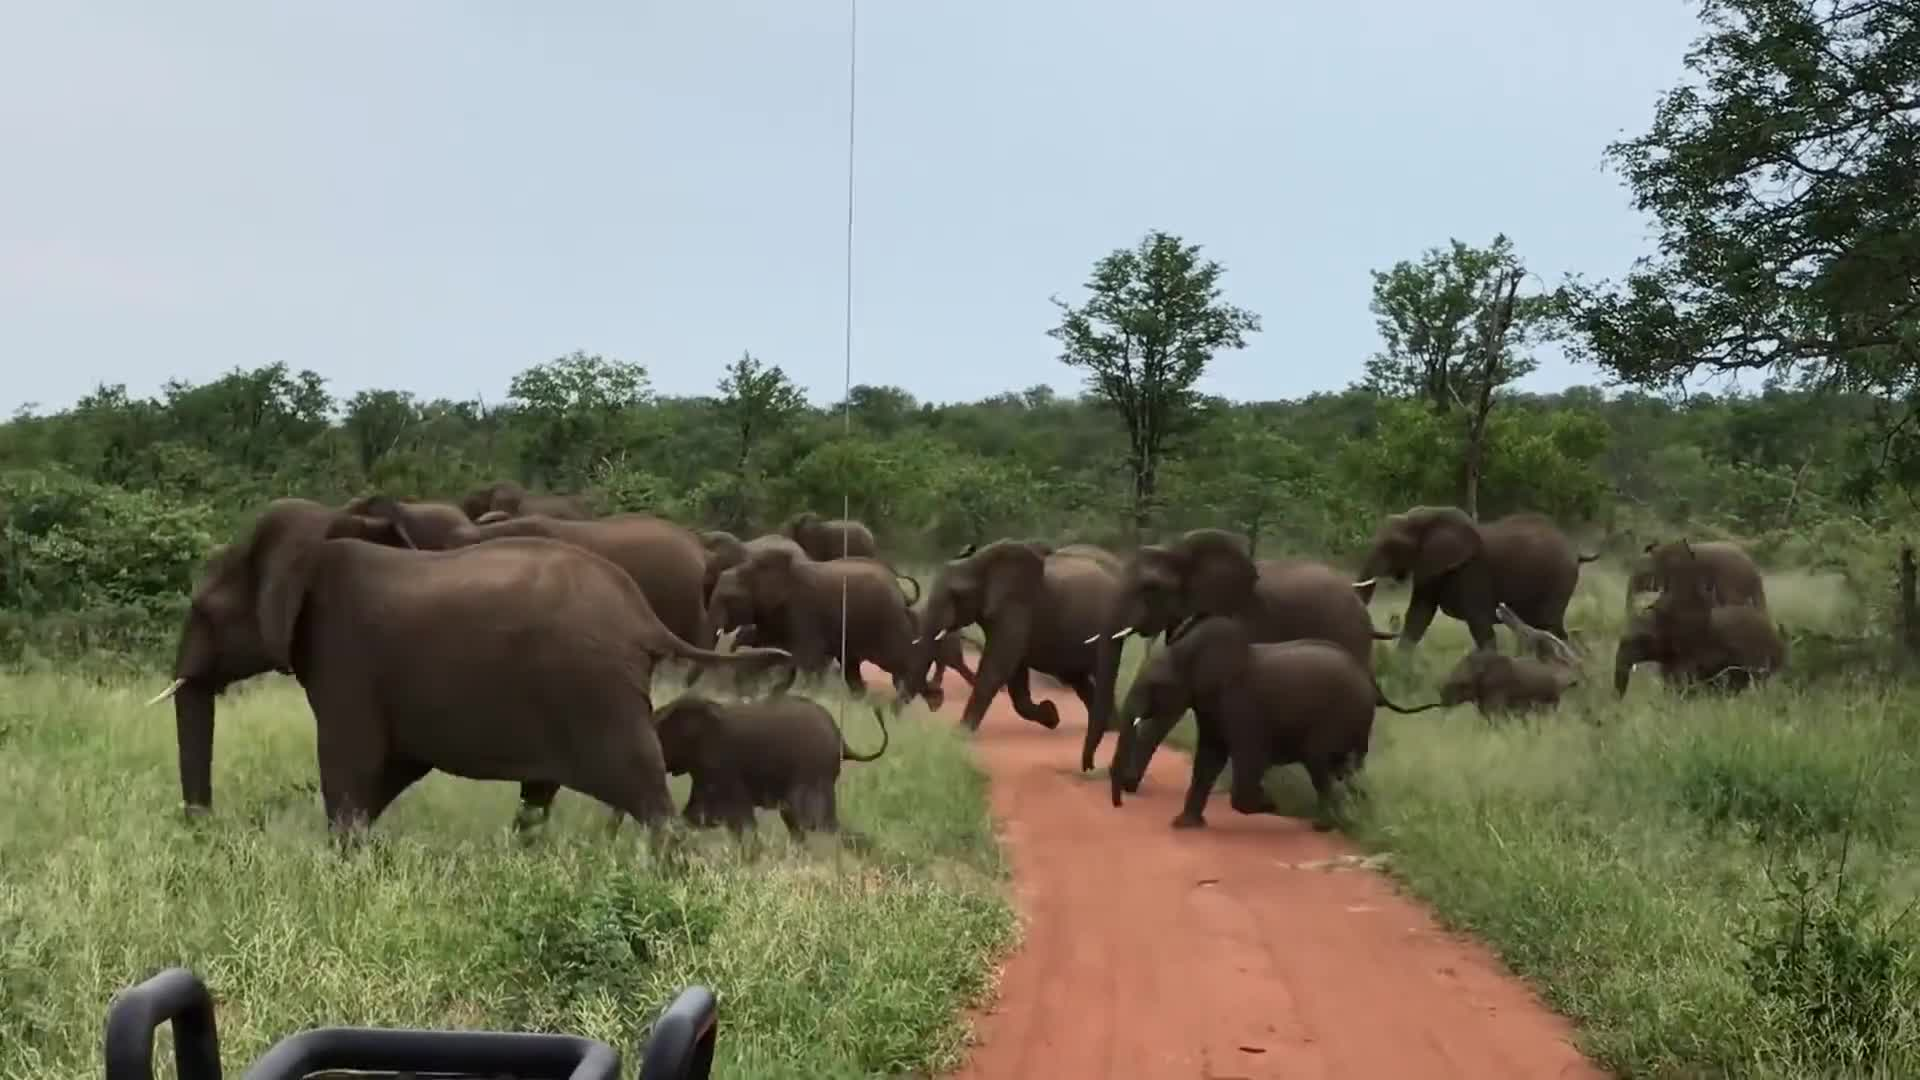 africa, battle of kruger, elephant, elephant charge, elephant stampede, elephants, elephants attack car, elephants stampede car, kruger, kruger attack, kruger national park, lions, national, park, pmmesteamk3ys, stampede, terrifying, travel & events, trent holmes, wild elephants, Terrifying Elephant Stampede / Charge  in Kruger National Park GIFs